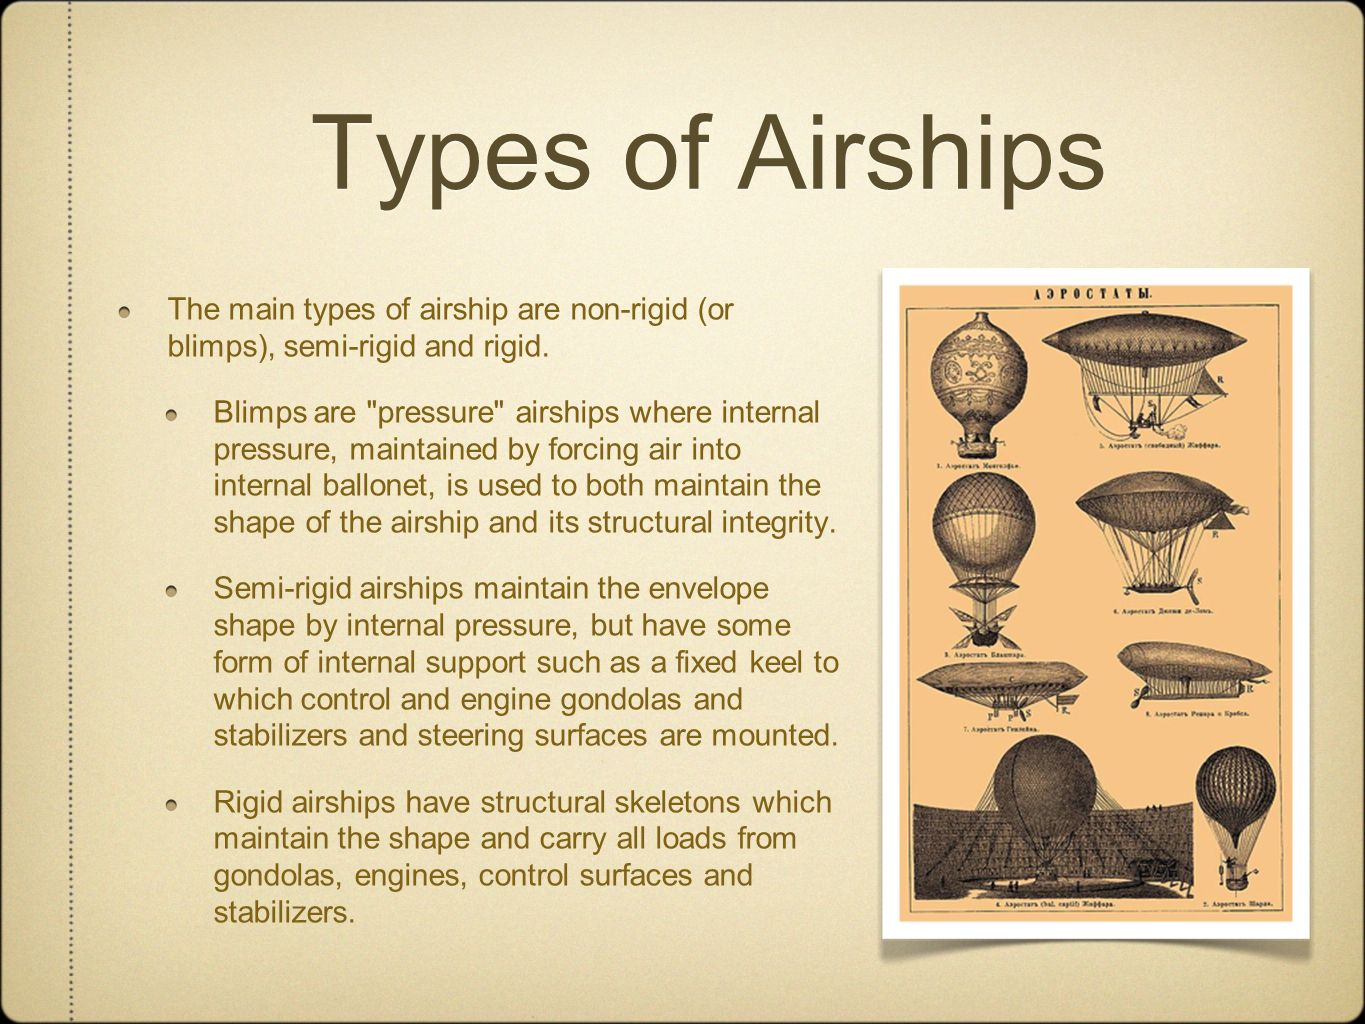 Types of Airships The main types of airship are non-rigid (or blimps), semi-rigid and rigid. Blimps are